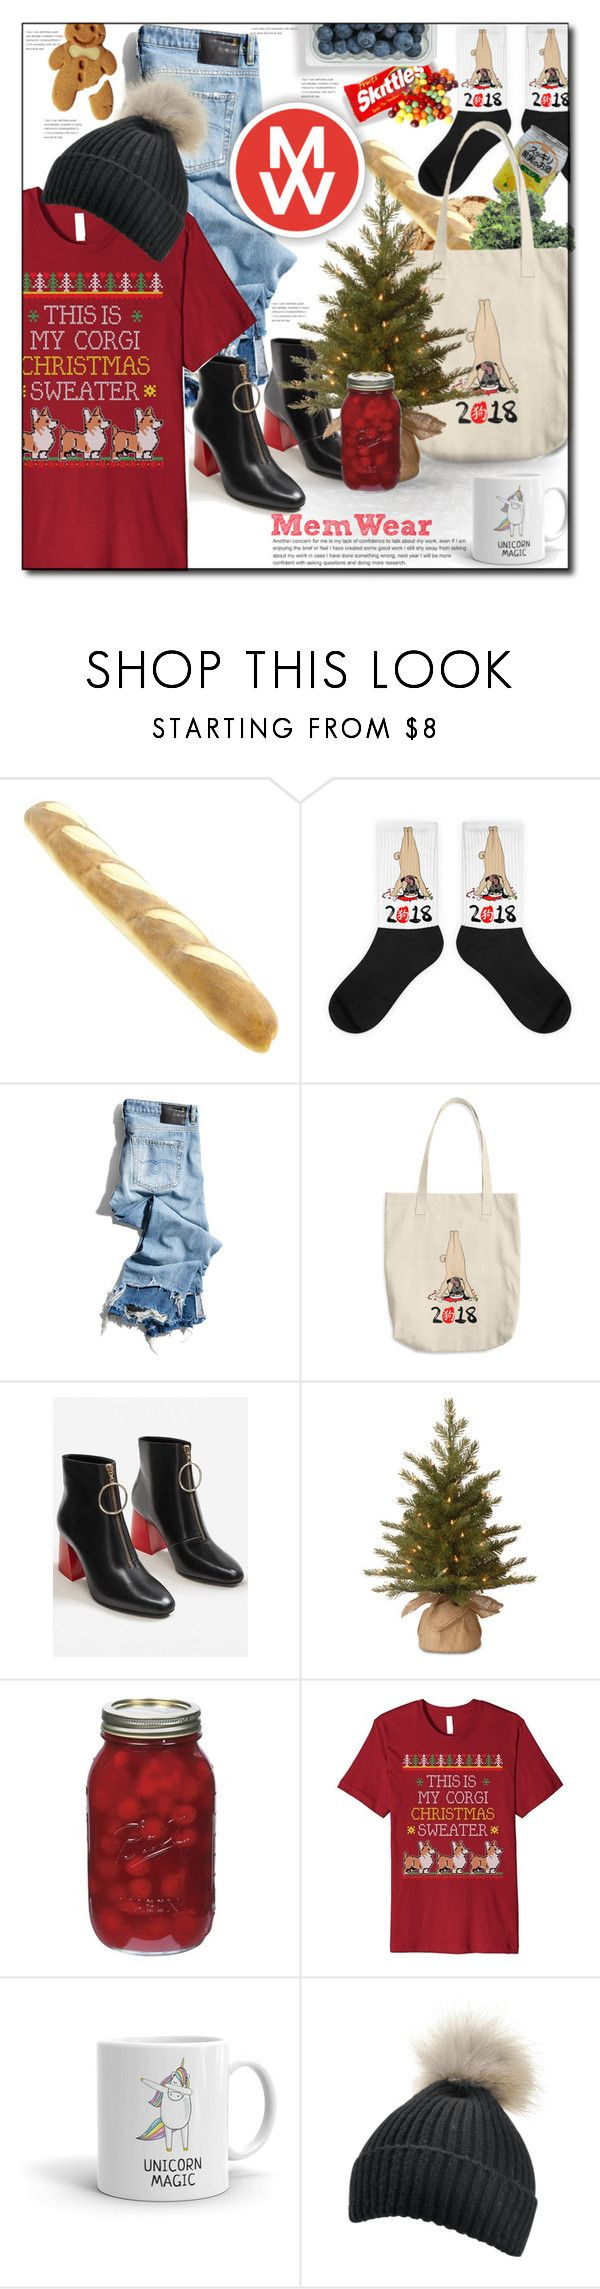 """""""MemWear: Win 20$ Cash For Christmas"""" by astromeria ❤ liked on Polyvore featuring Citron, Kale, R13, MANGO, National Tree Company and Corgi"""